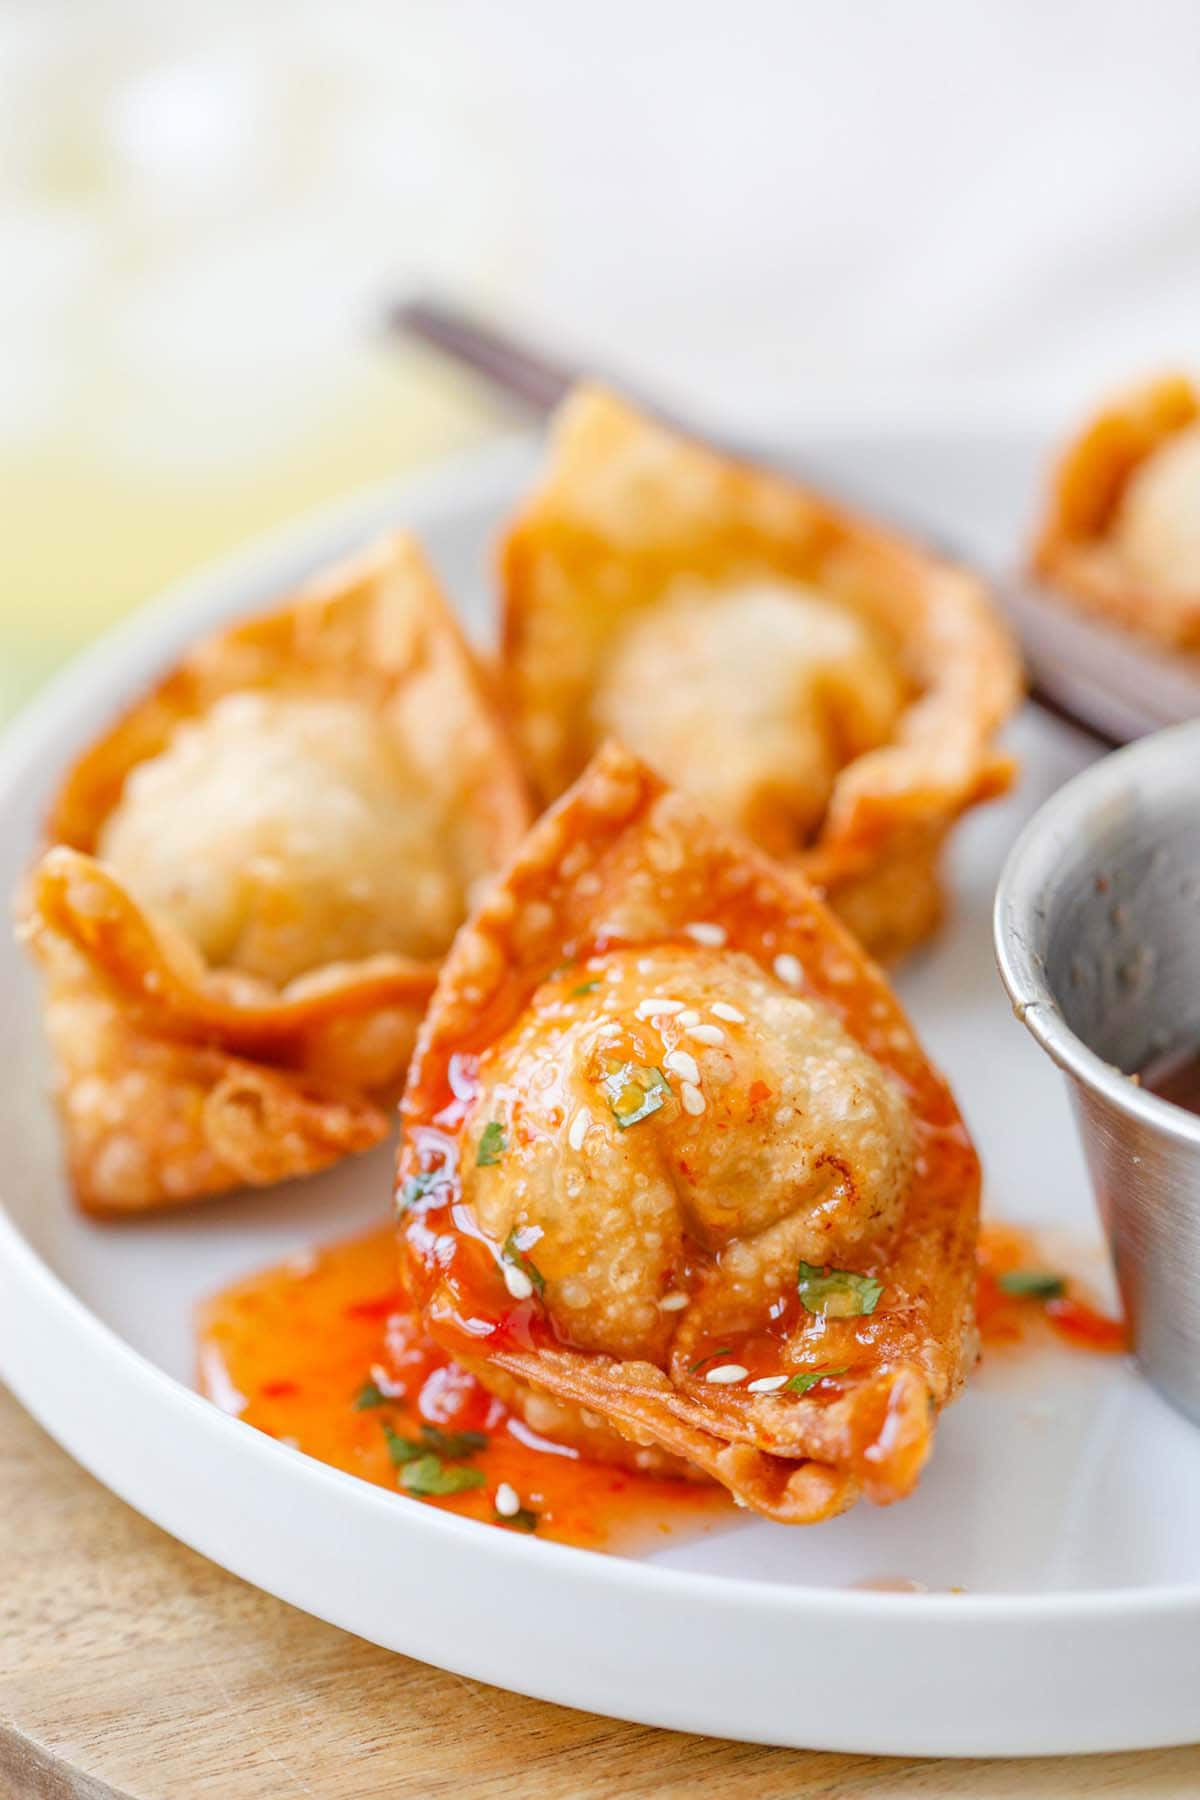 Wonton, fried to golden brown and covered in sweet and sour sauce on plate.